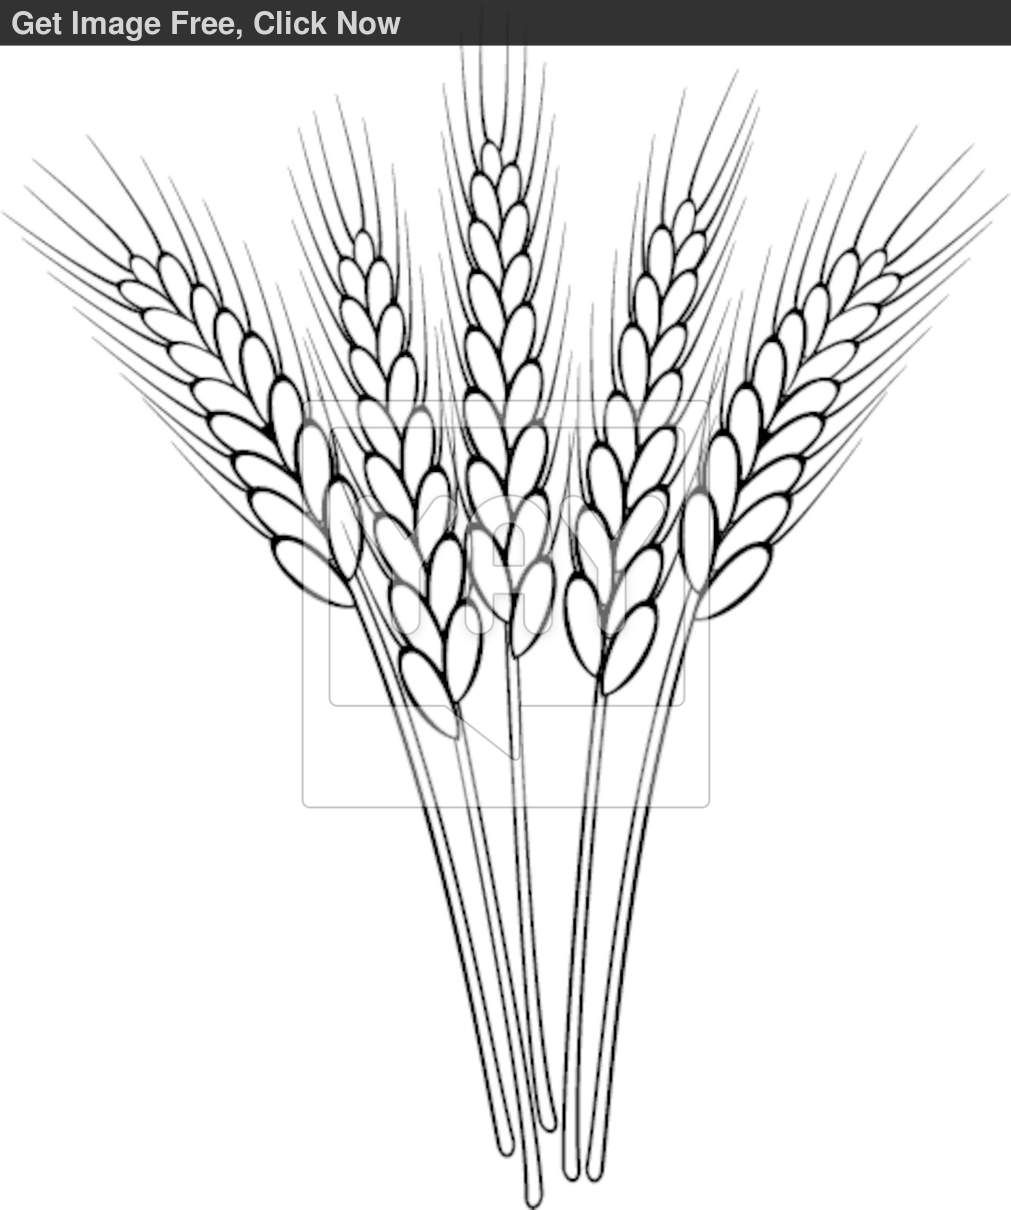 Wheat Stalk Clip Art Black and White Wheat drawing